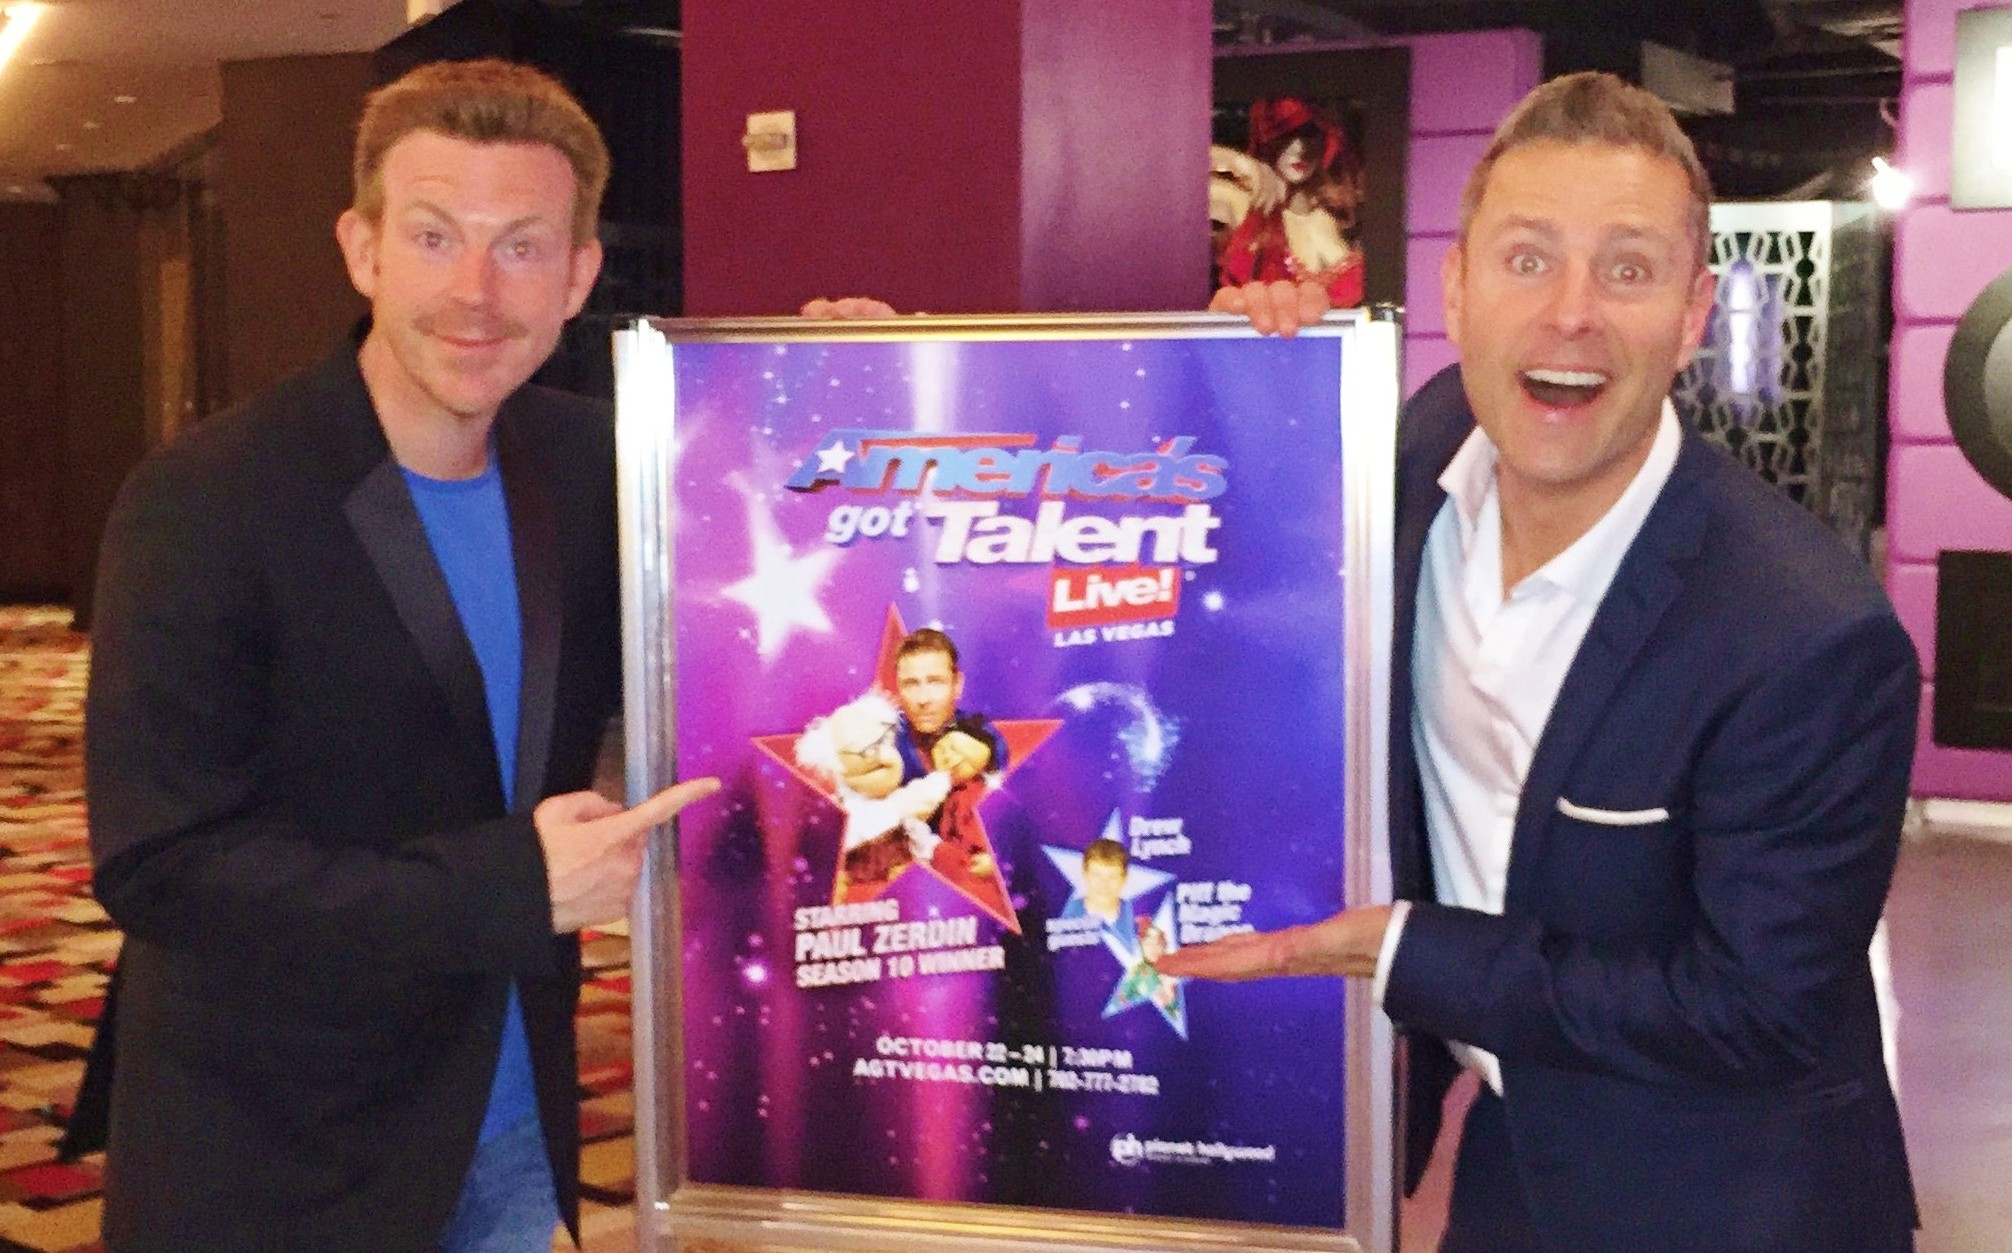 Enjoy Celebrity Radio's Paul Zerdin Ventriloquist Interview…… Paul Zerdin is an English comedian and ventriloquist from London. He has performed at the Royal Variety Performance […]